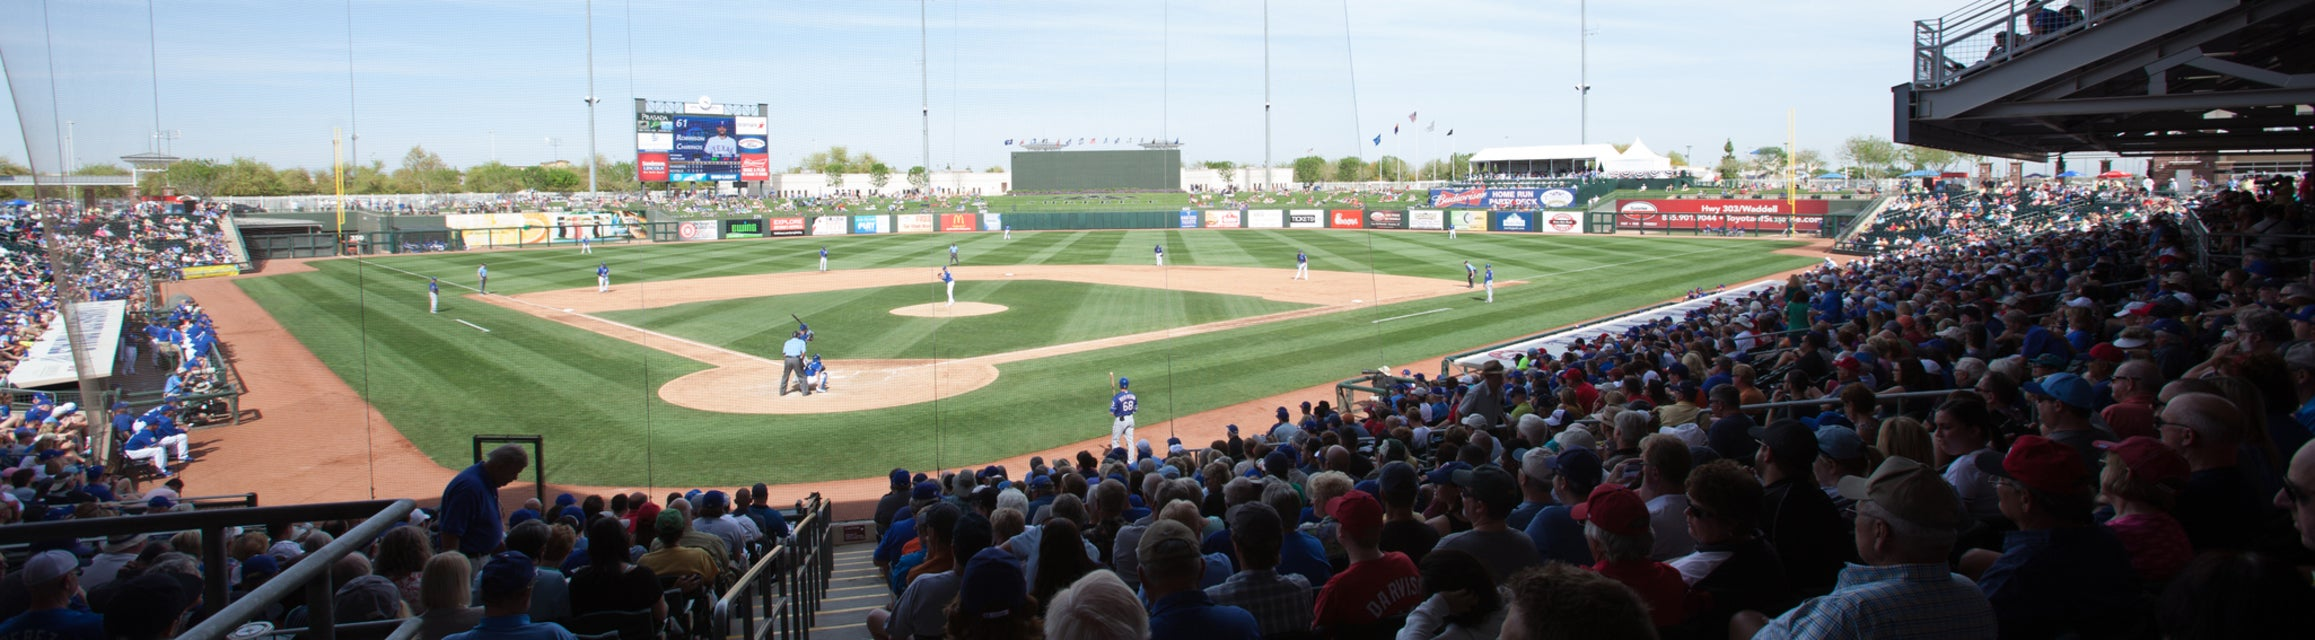 Rangers - Spring Training Tickets